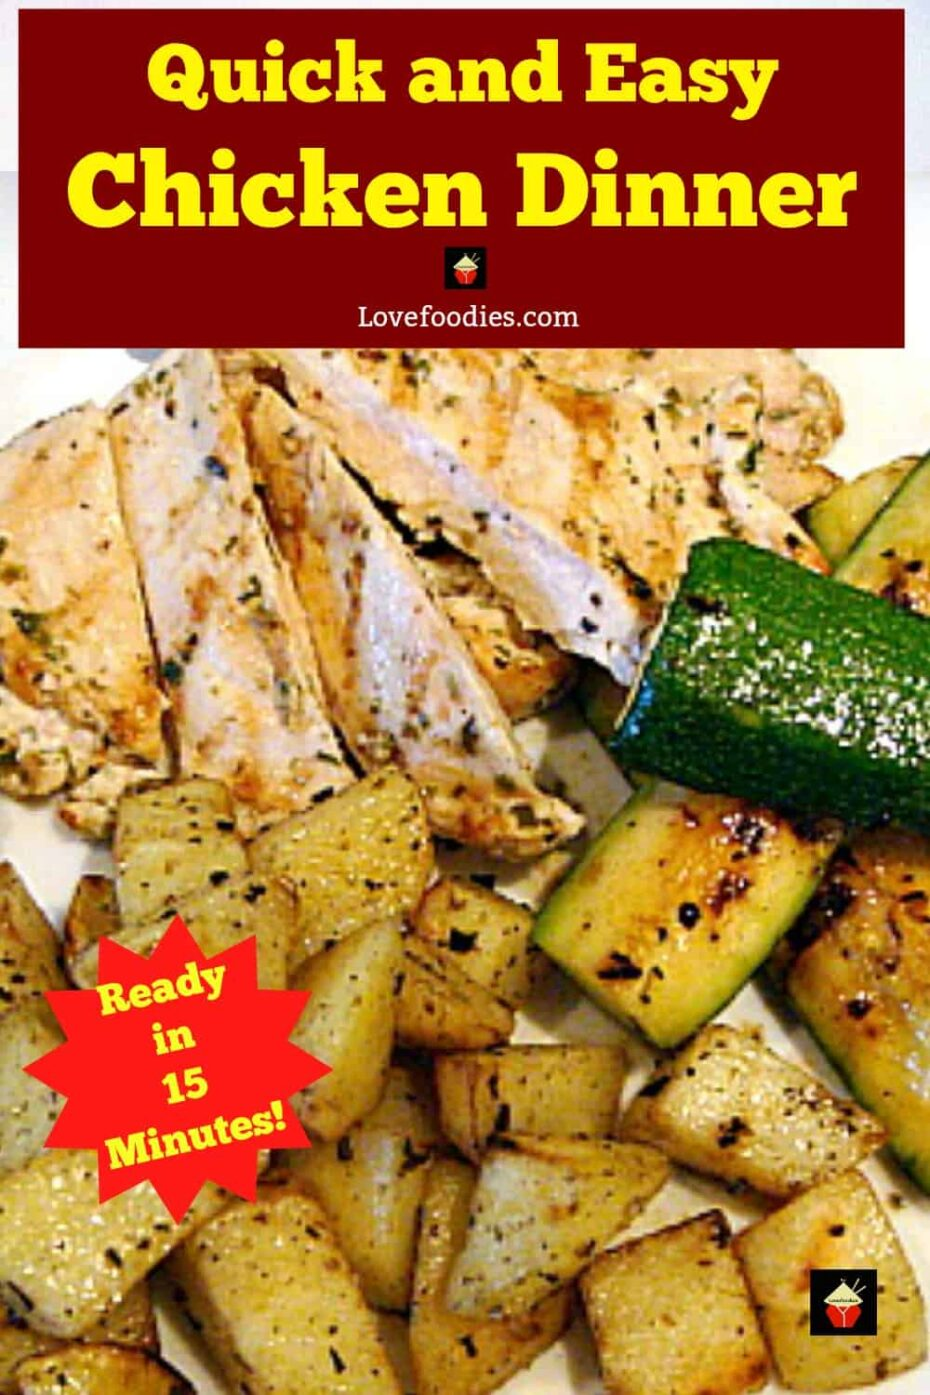 Quick and Easy Moist Chicken Breast, pan-fried marinated chicken full of flavor and so tender too!